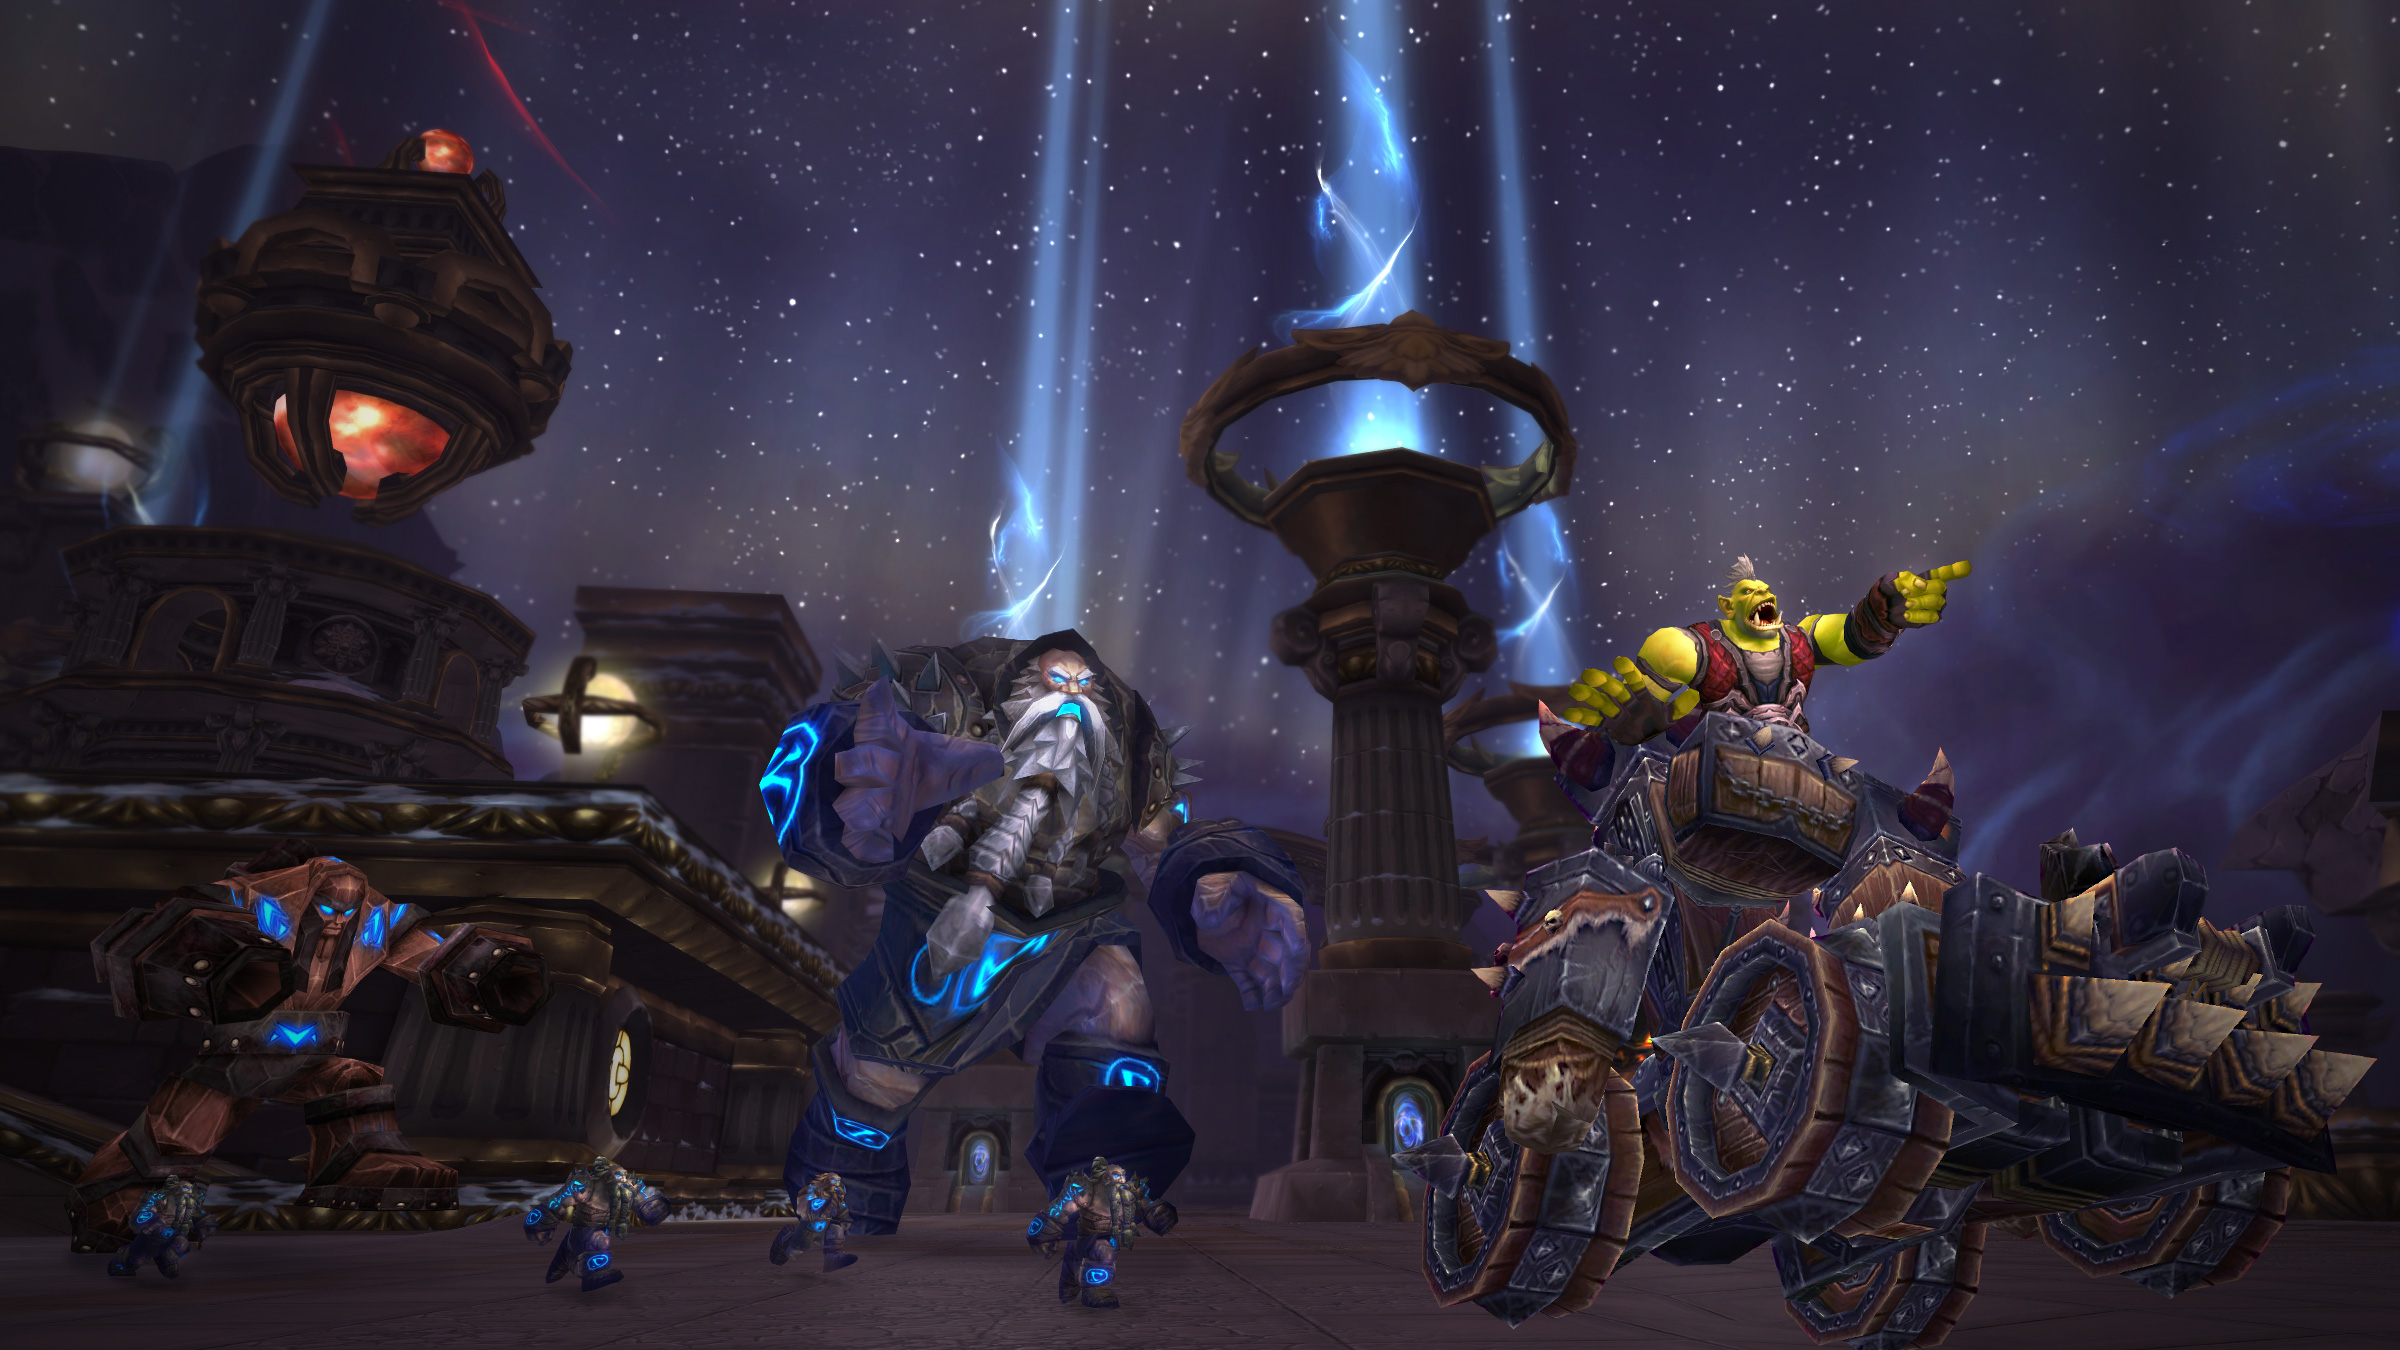 Wrath of the Lich King Timewalking Returns — March 12-19